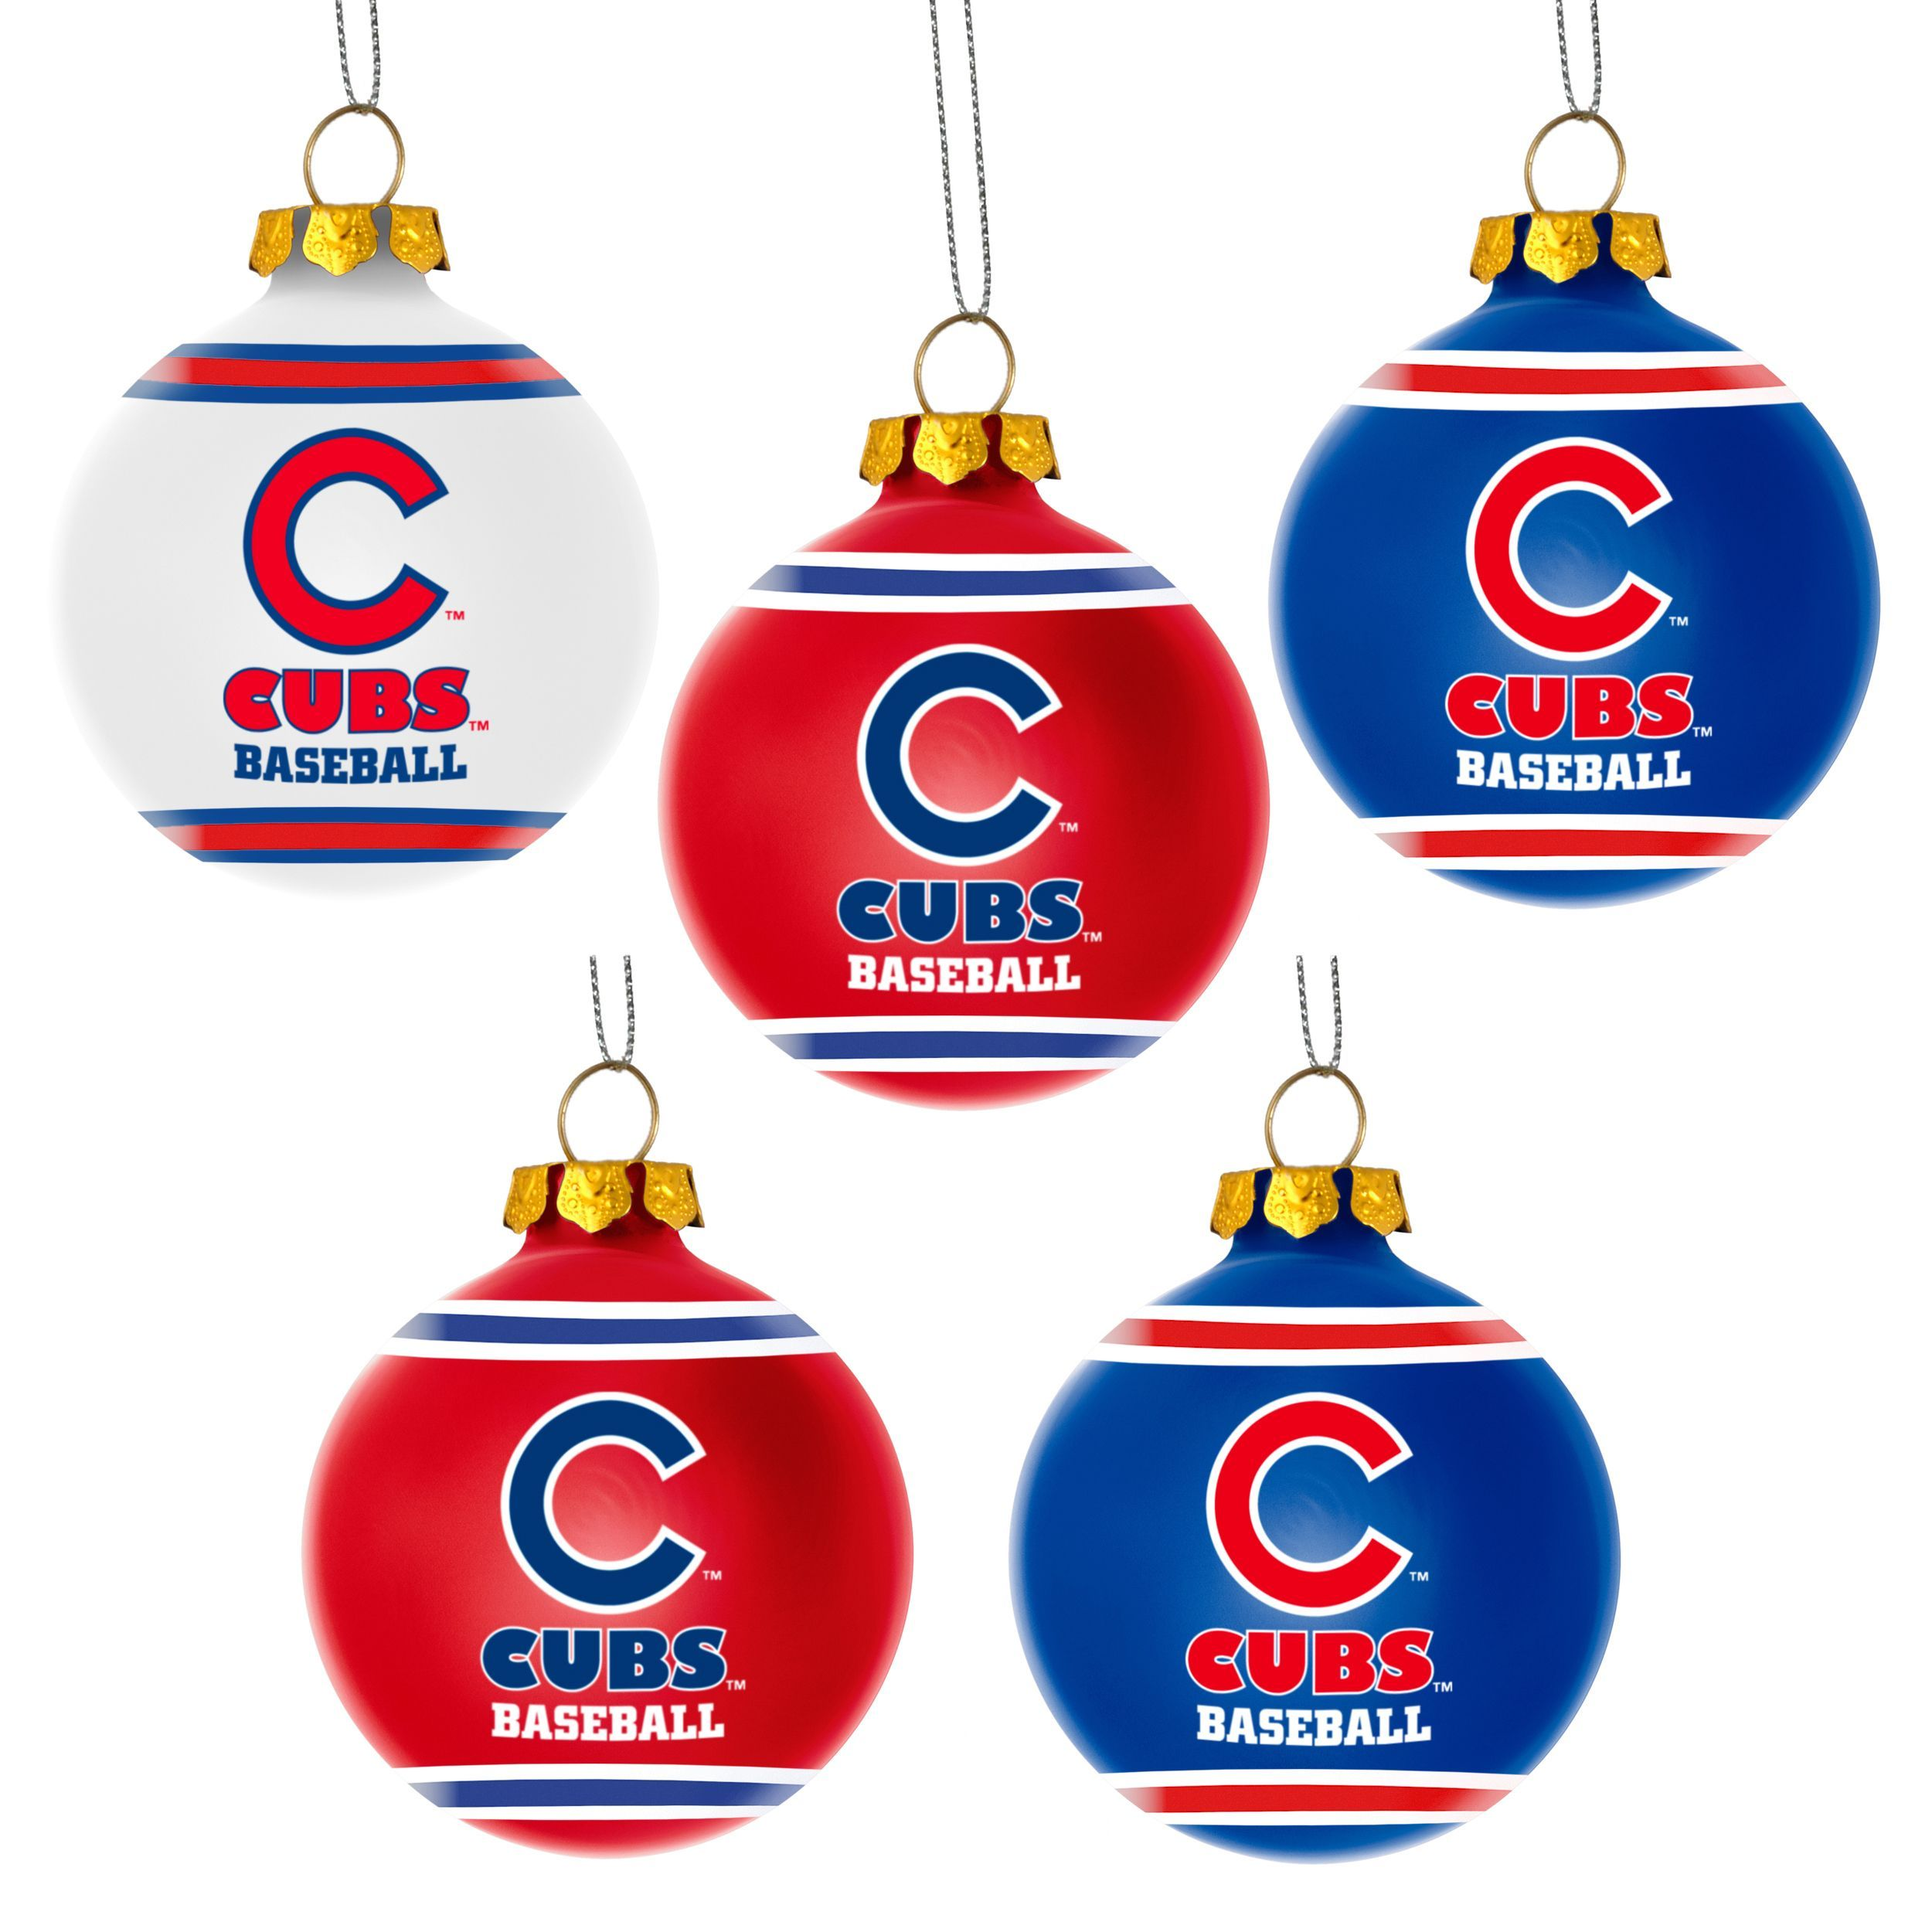 Cubs Christmas Ornaments.Keith S Tree Forever Collectibles Chicago Cubs Shatterproof